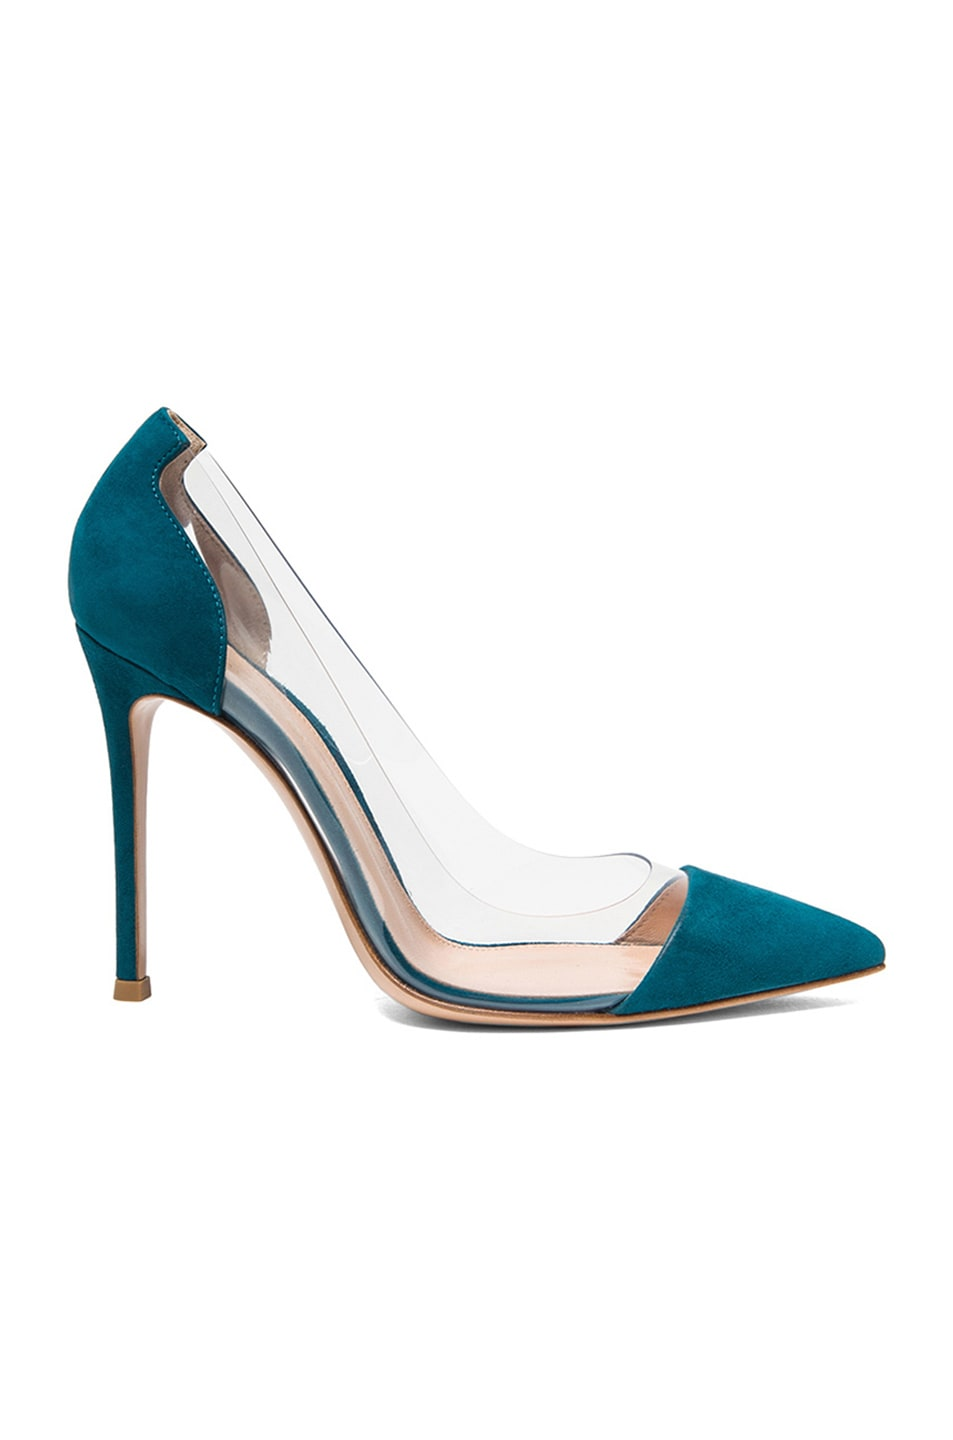 Image 1 of Gianvito Rossi Suede & Plexy Laser Pumps in Pavone